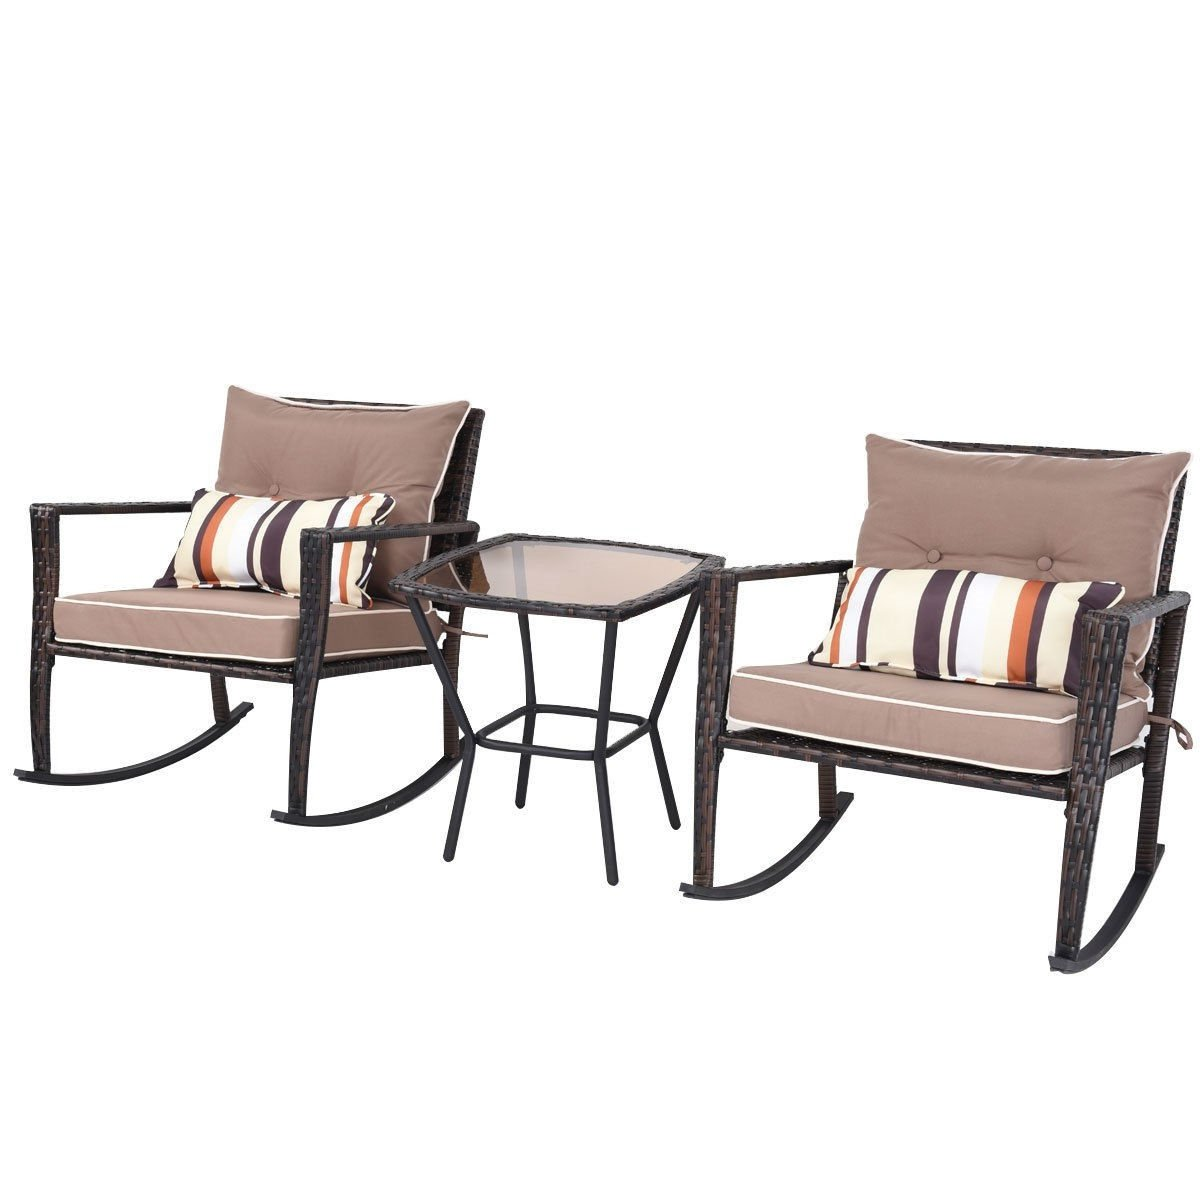 Brown 3 Piece Patio Set Rattan Wicker Rocking Chairs with Coffee Table